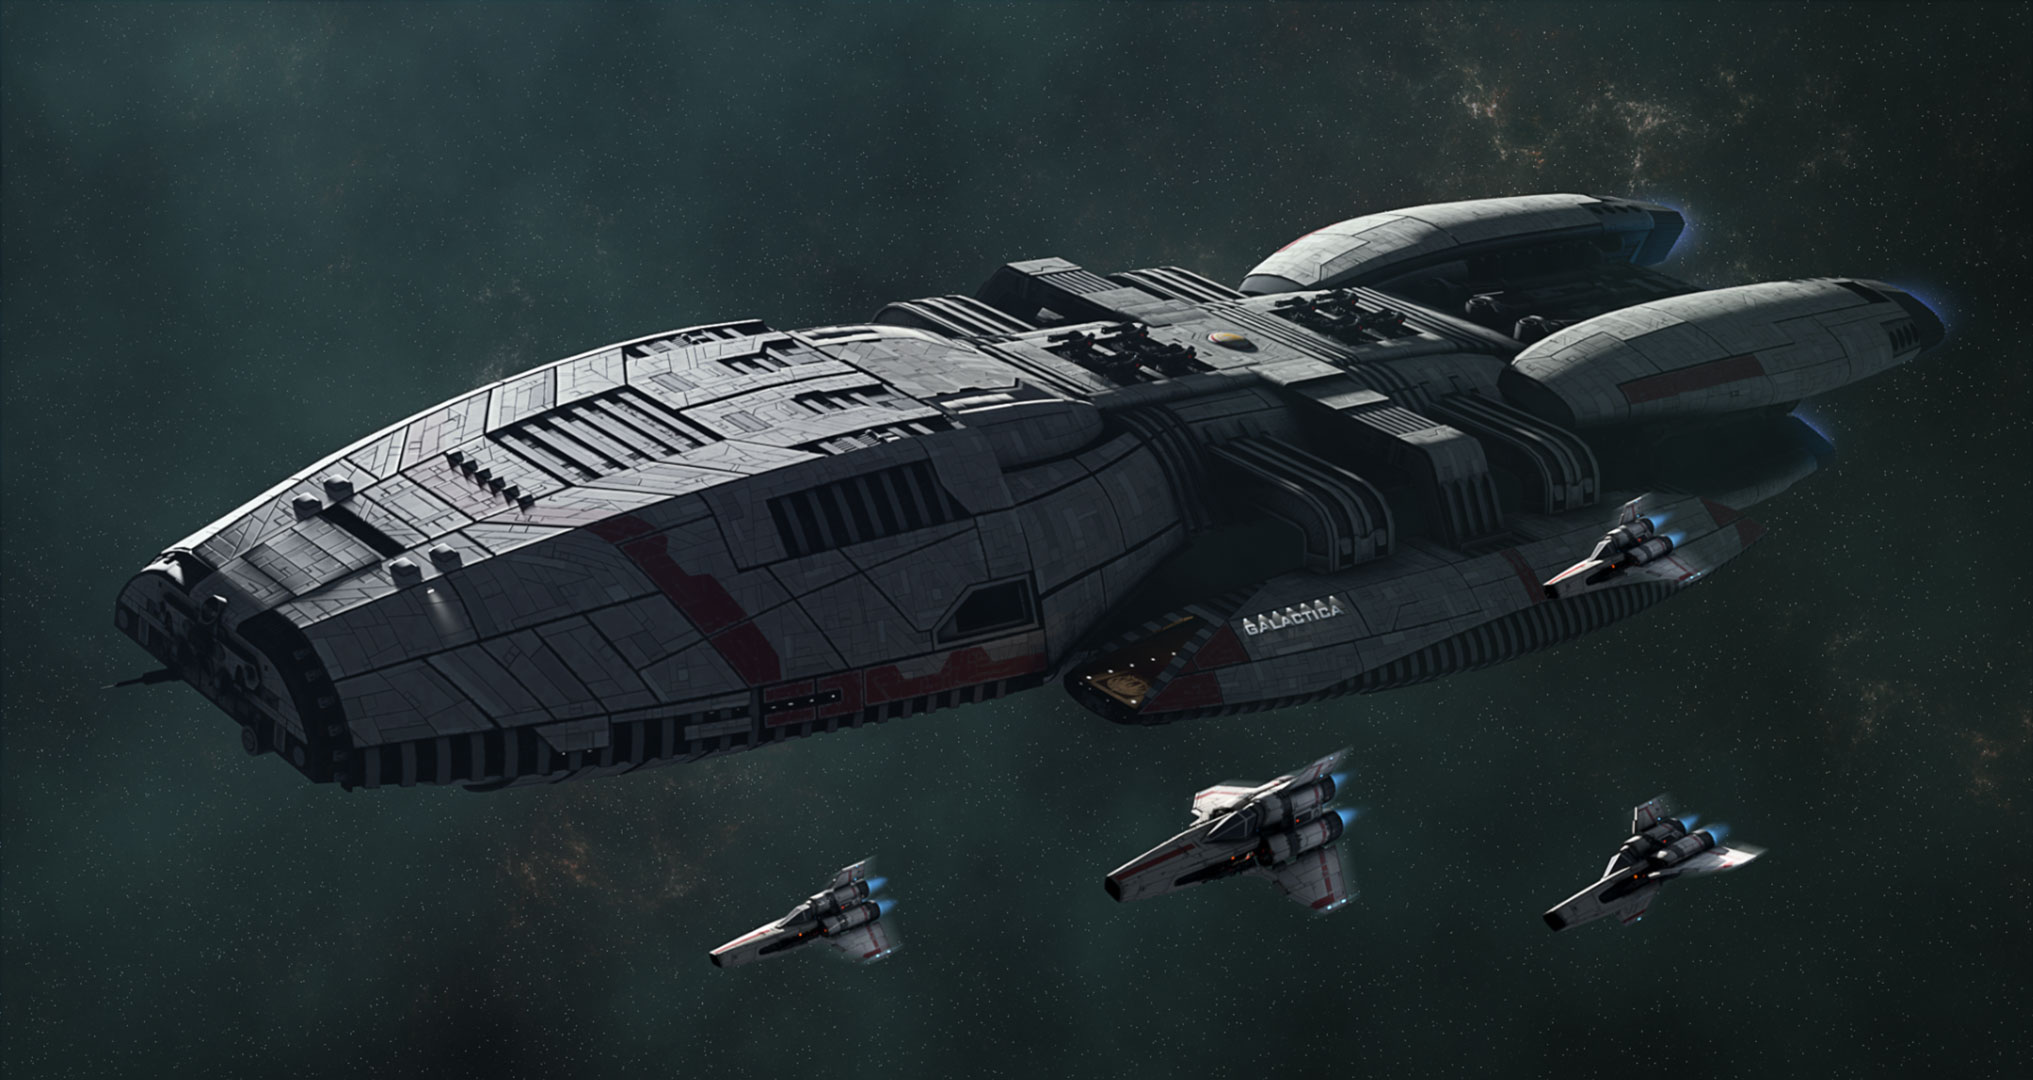 New Battlestar Galactica Series Won't Be a Remake | Den of Geek